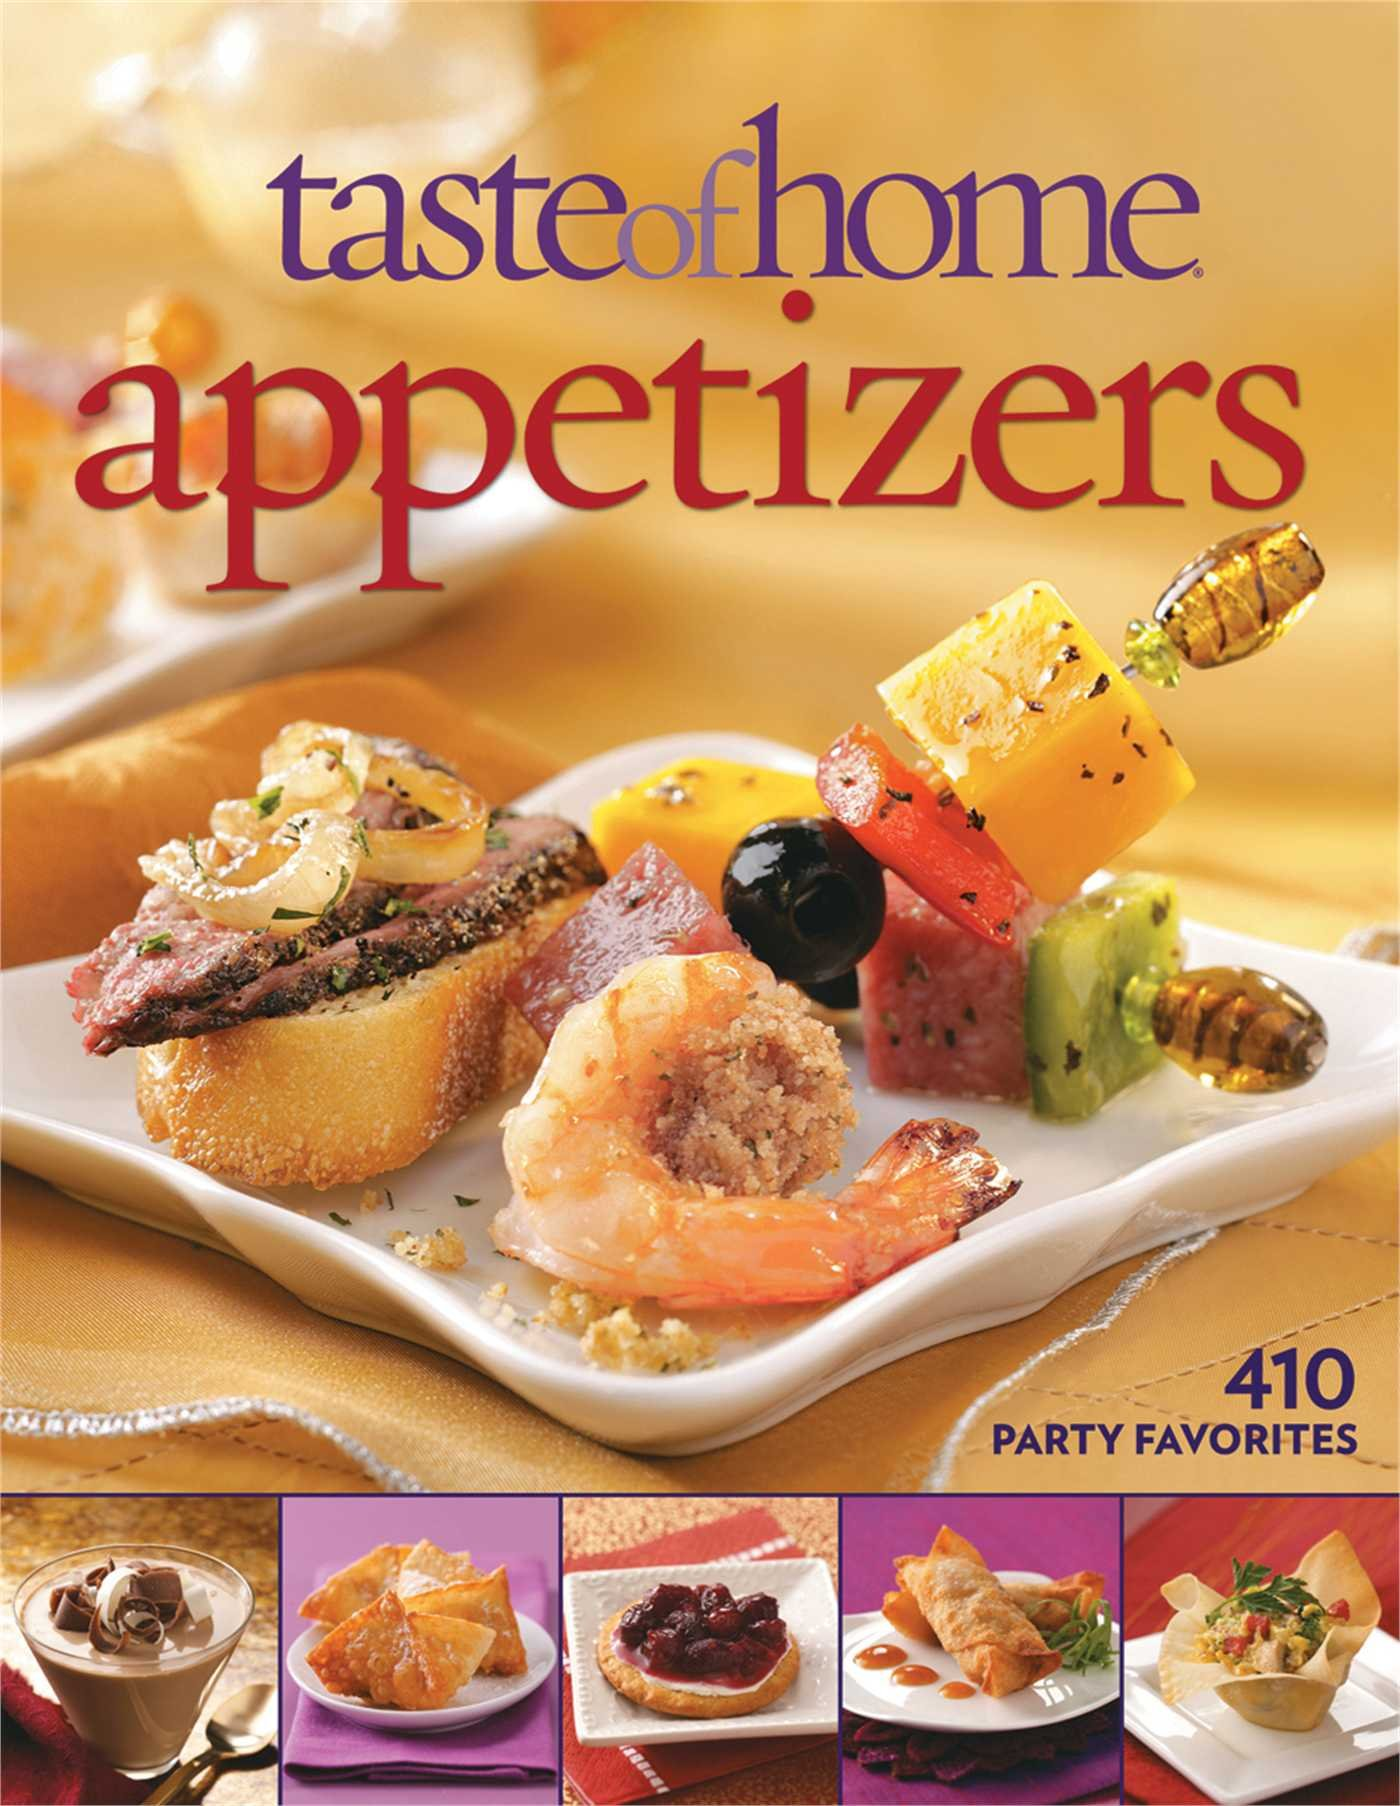 Taste of home appetizers 410 party favorites taste of home taste of home appetizers 410 party favorites taste of home 9780898218015 amazon books forumfinder Choice Image